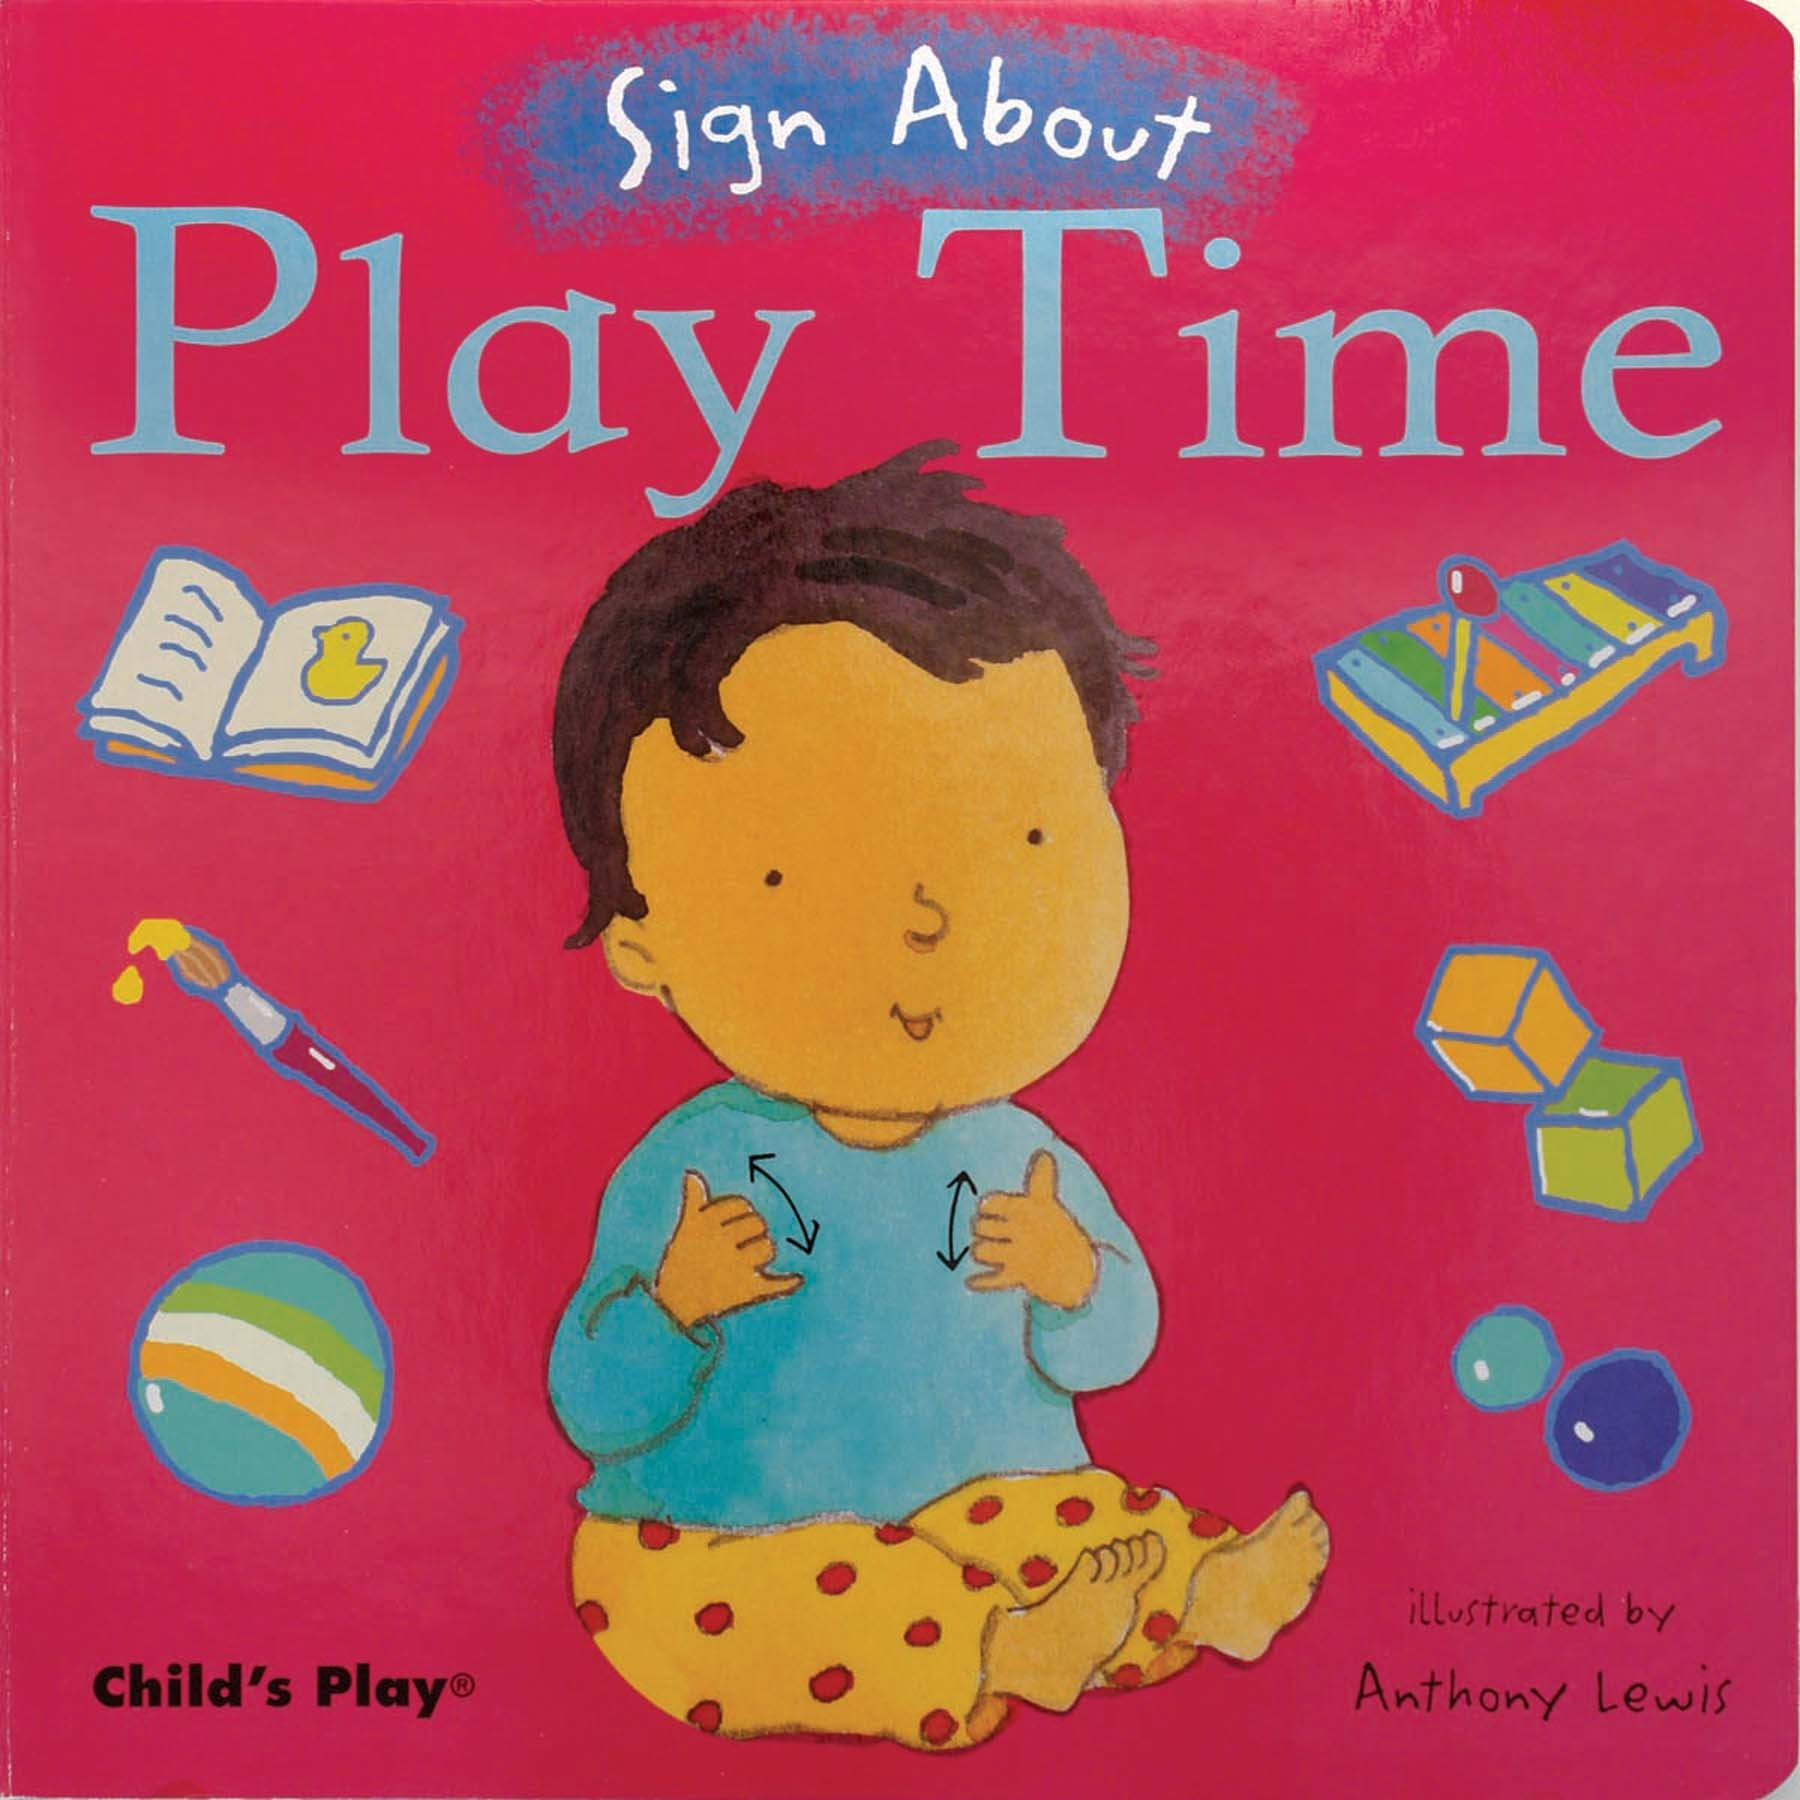 Play time sign about anthony lewis 9781846430312 amazon play time sign about anthony lewis 9781846430312 amazon books fandeluxe Gallery